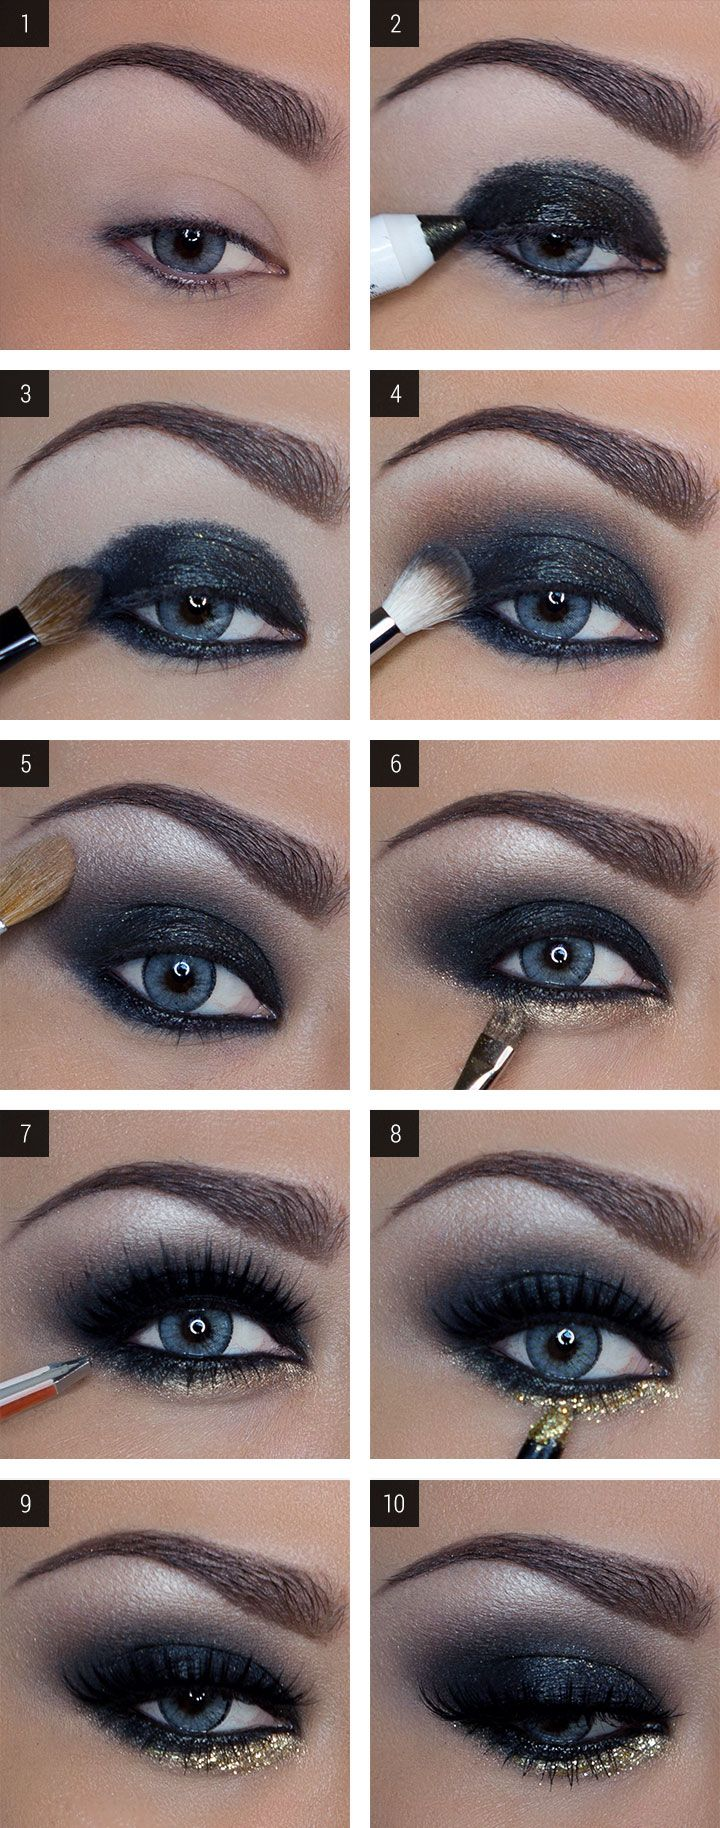 Faddish Glitter Somky Eye Makeup Tutorial for New Year's Eve